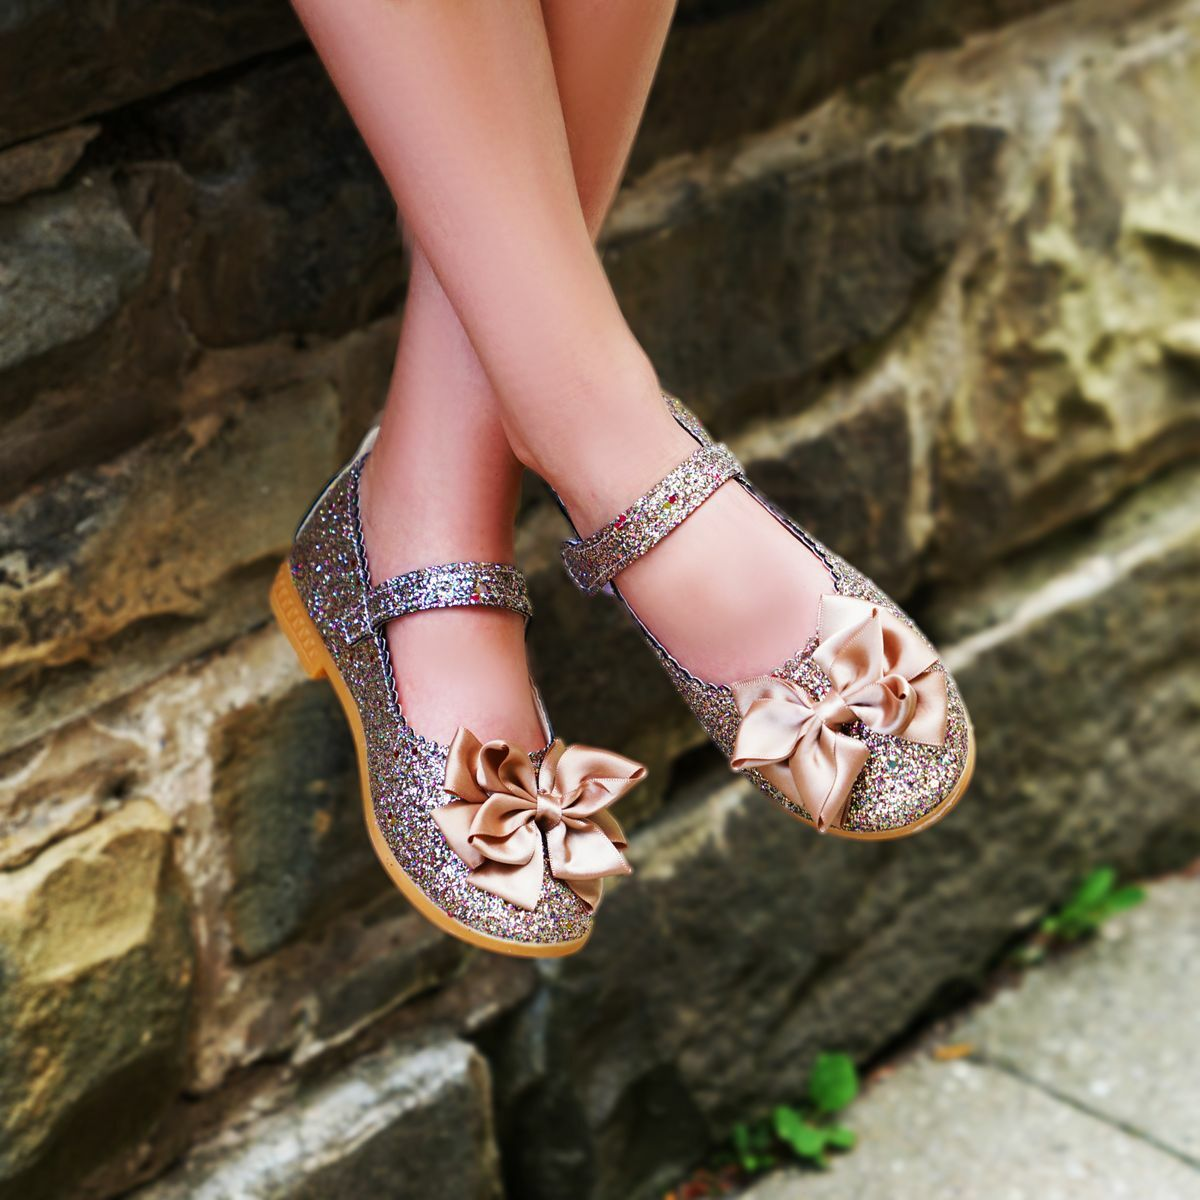 Sparkly copper and gold shoes with a bow